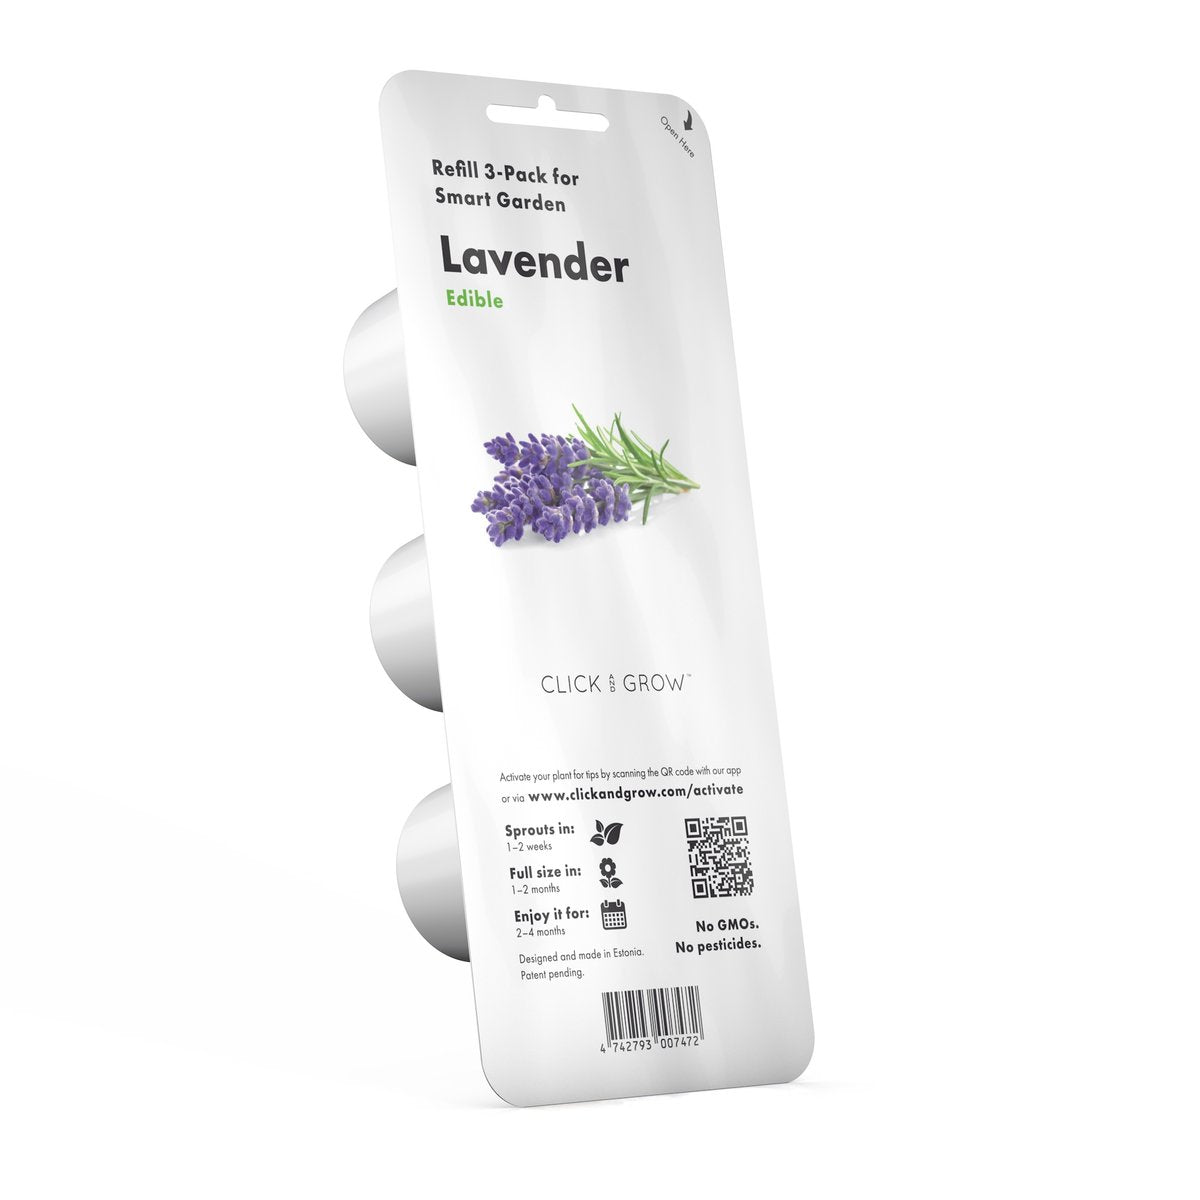 Click and Grow Refill 3-Pack - Lavender